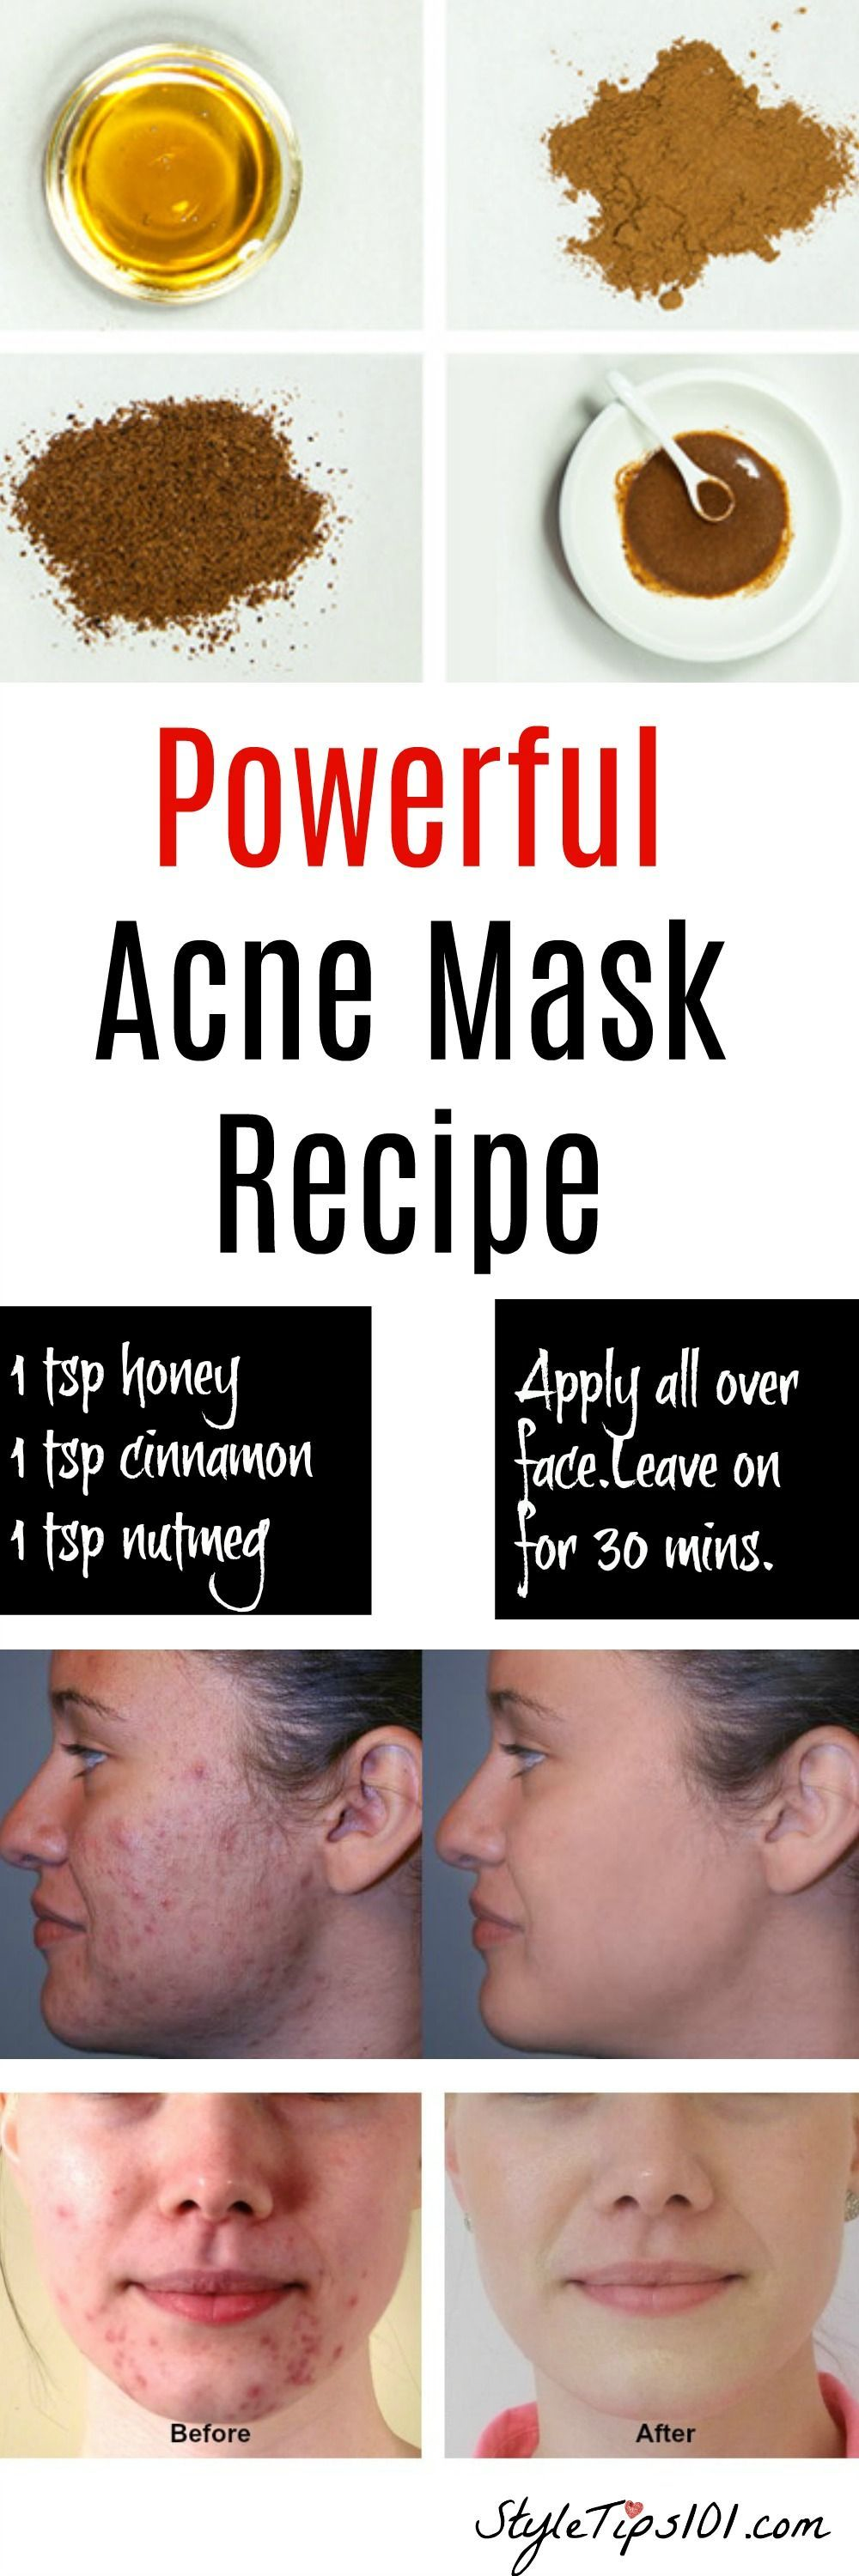 Natural Acne Mask Acnetreatment Natural Acne Mask Overnight Acne Remedies Home Remedies For Pimples